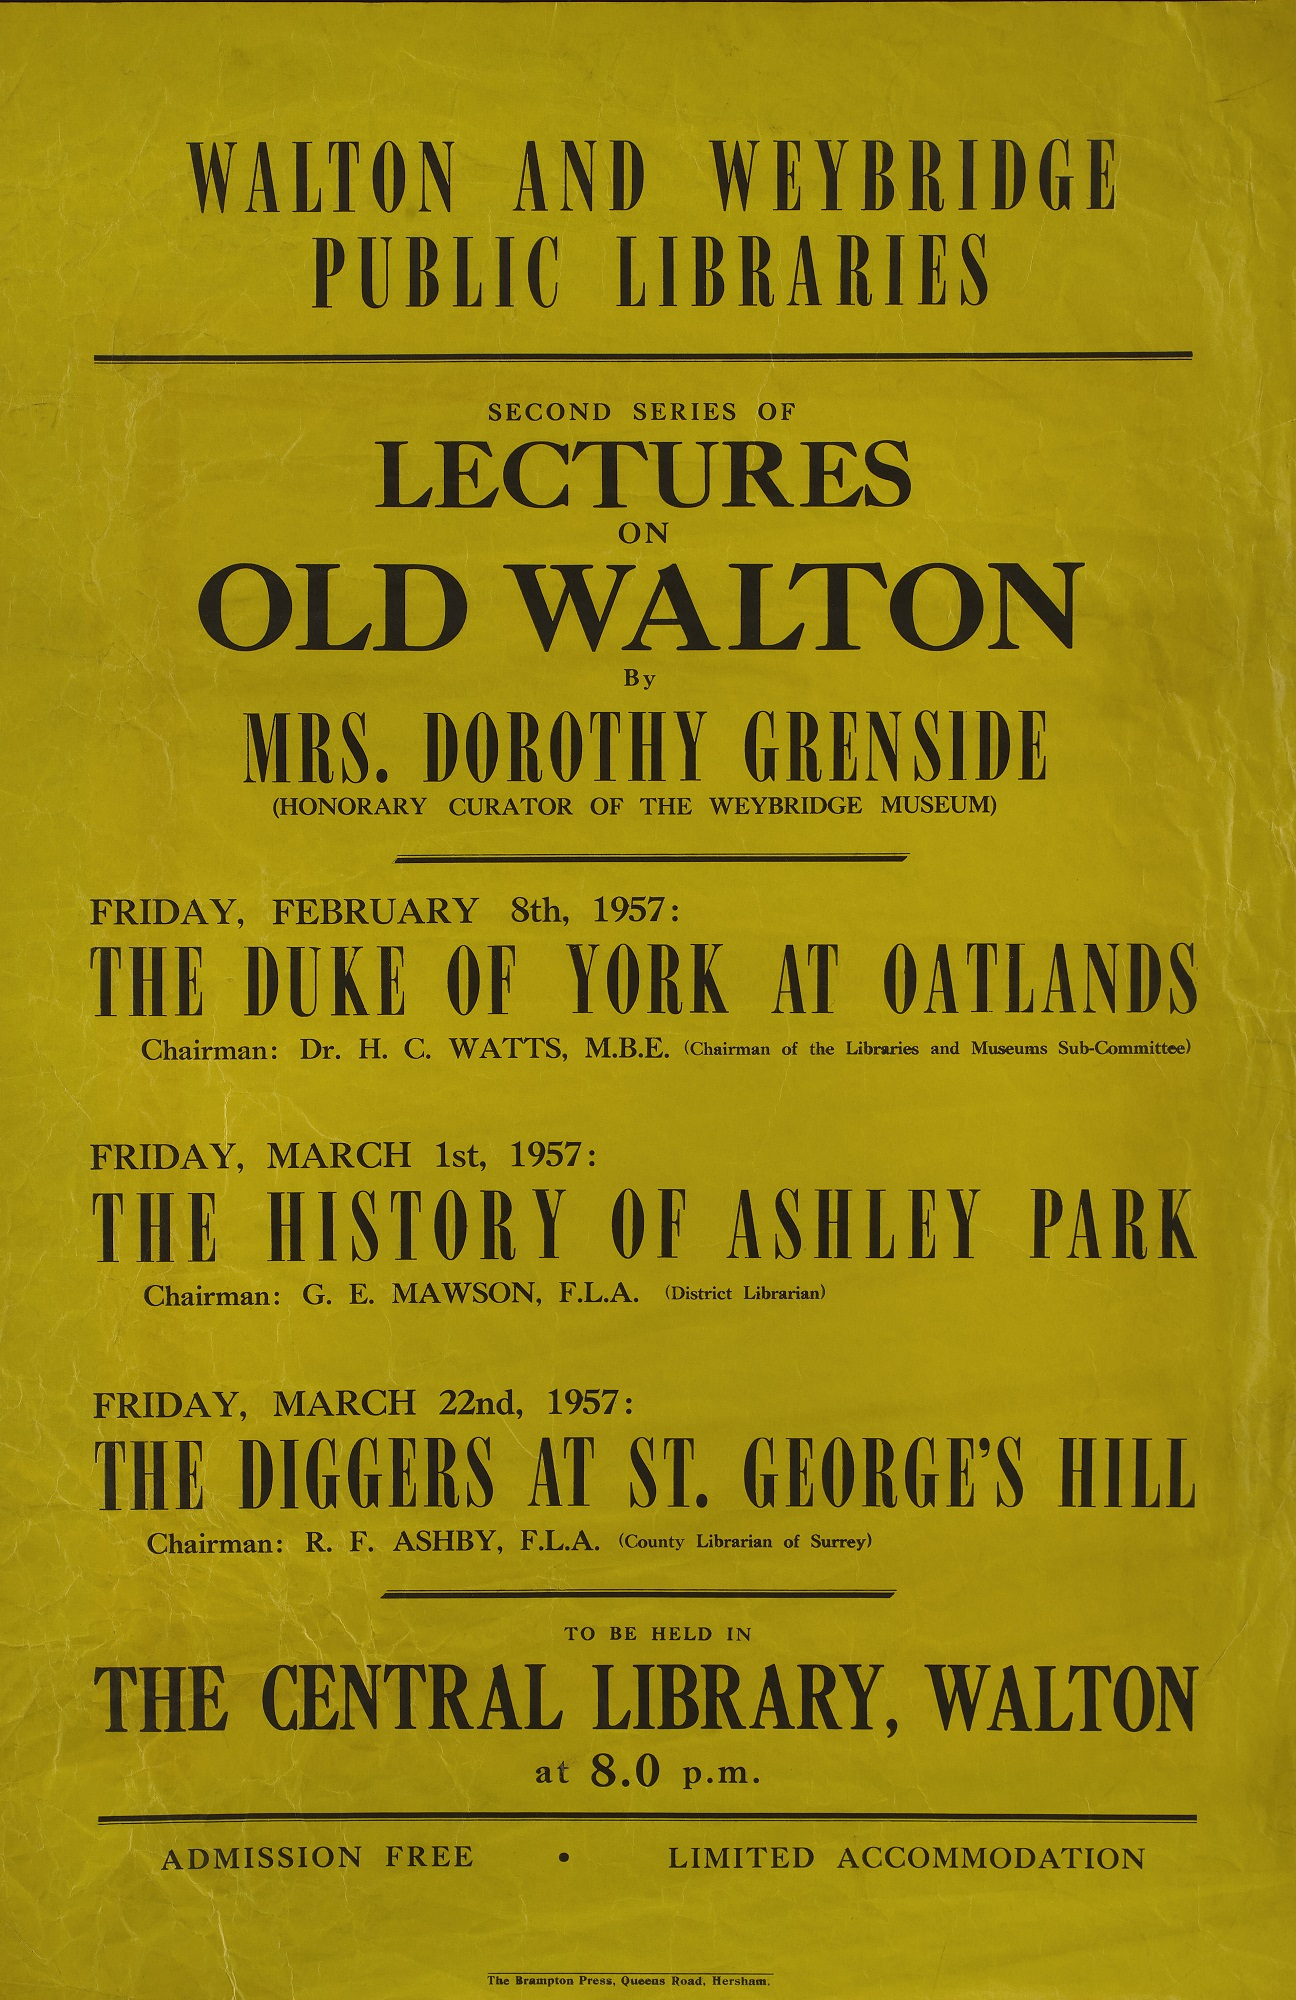 A poster listing public lectures on old Walton by Dorothy Grenside (former Weybridge Museum Curator) held at the former Walton Library, 1957.